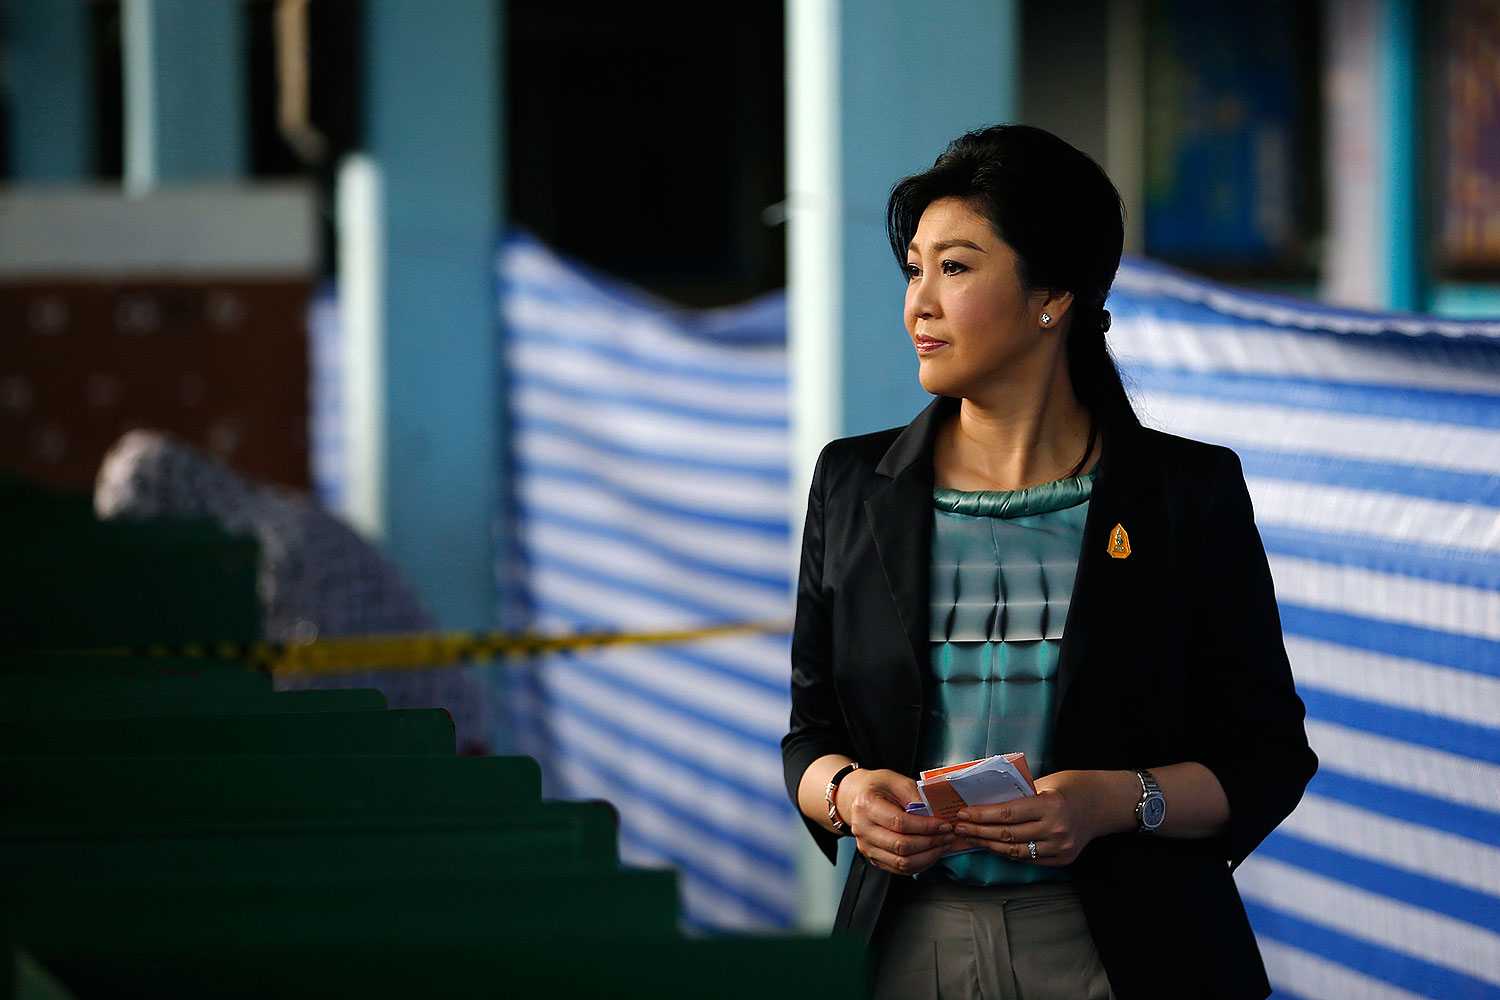 Thai Prime Minister Yingluck Shinawatra holds her ballot before casting it at a polling station in Bangkok Feb. 2, 2014